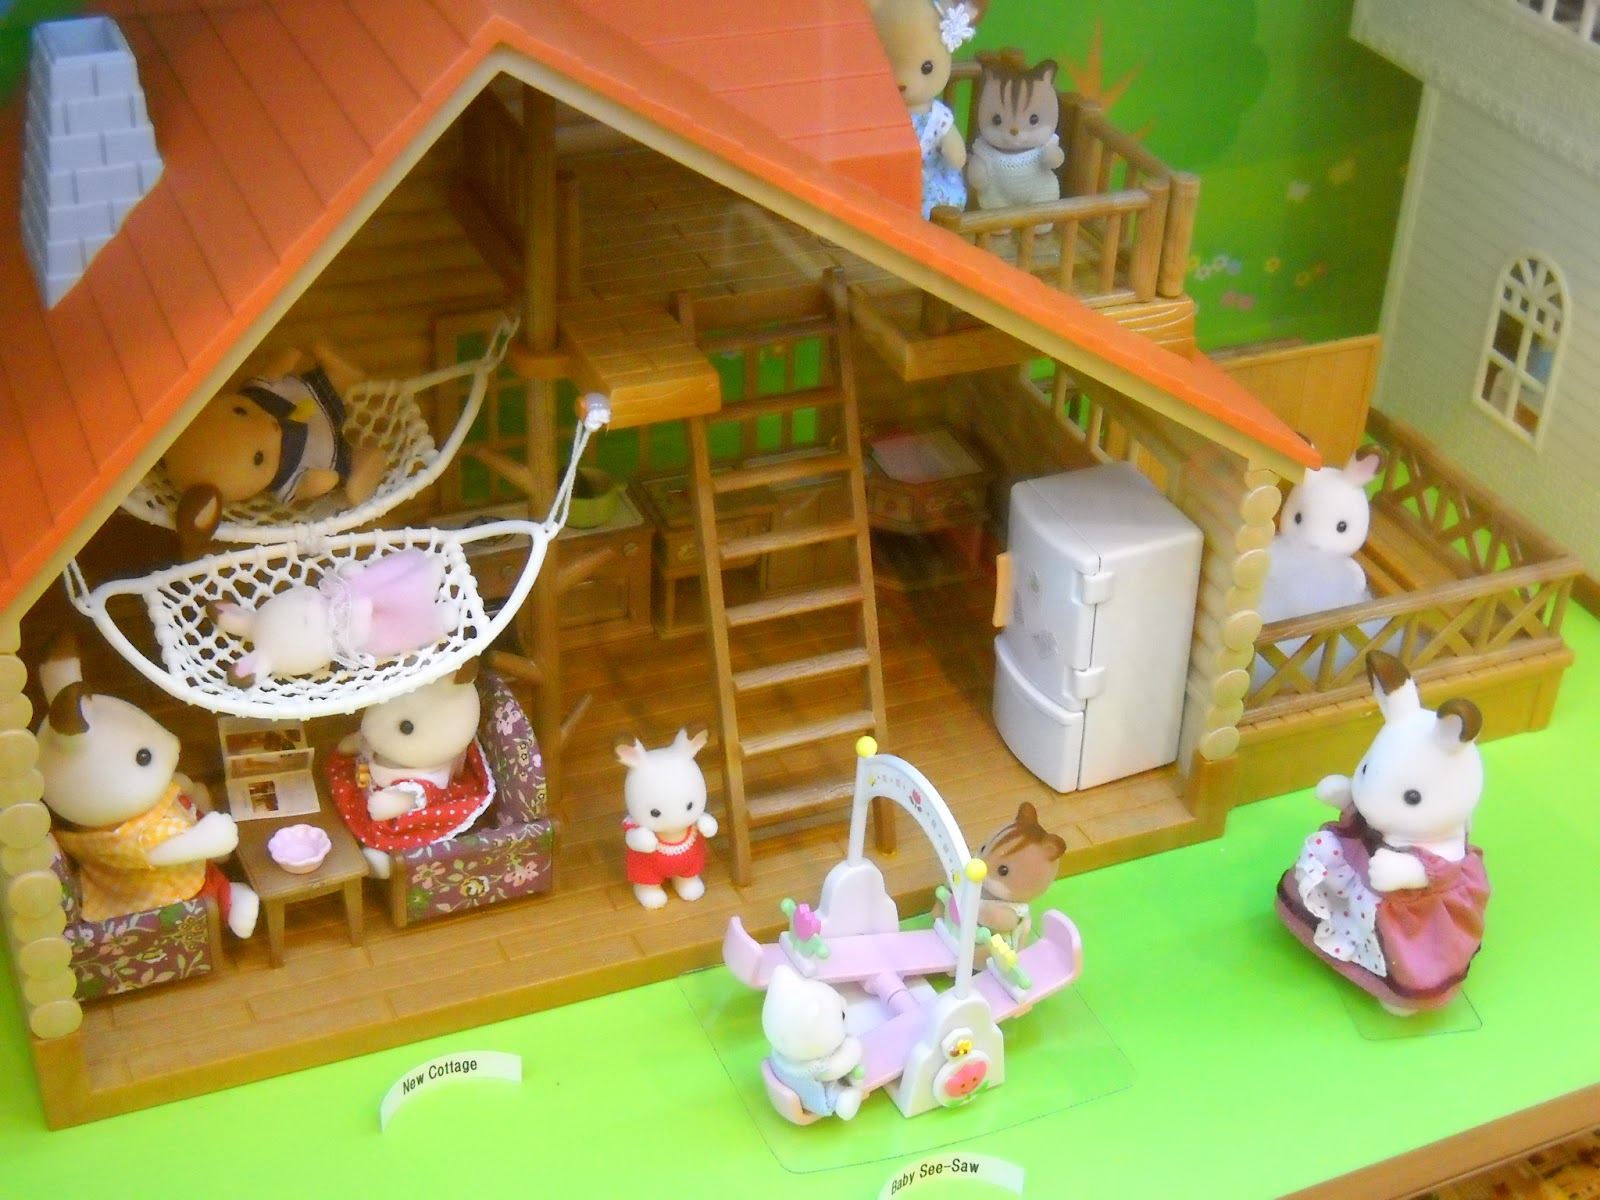 calico critters 5 calico critters wallpaper download 5 calico 1600x1200